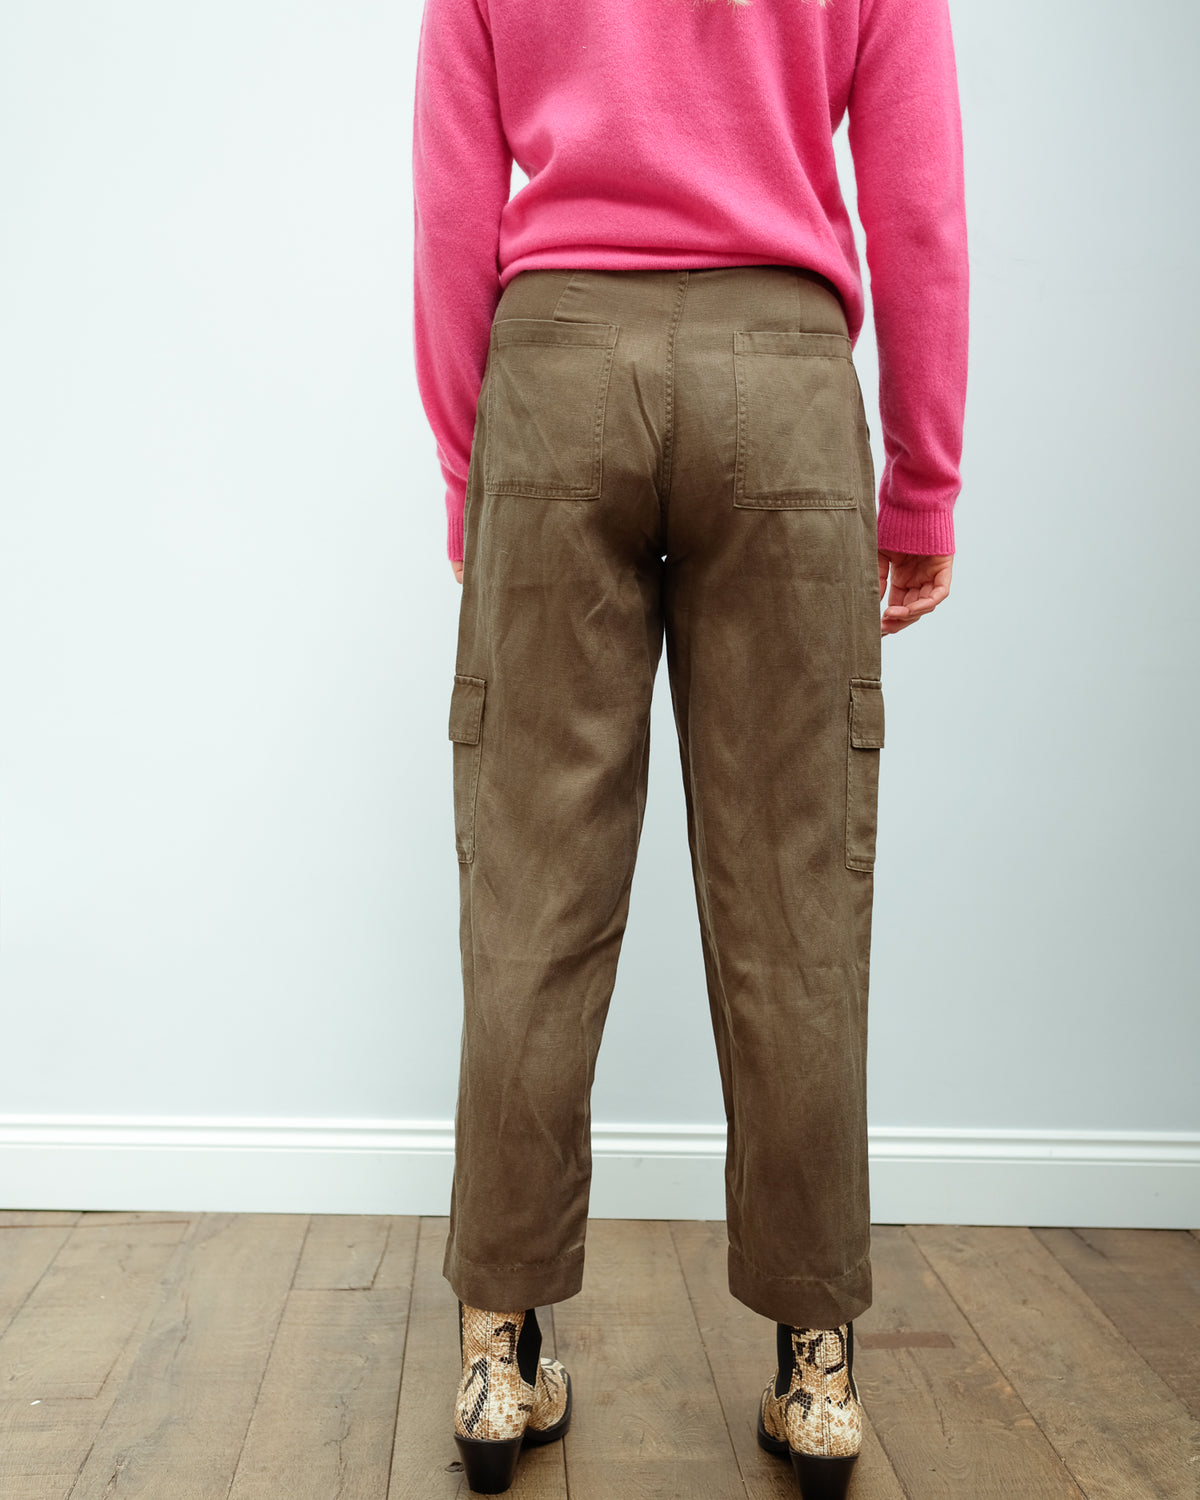 RAILS Cargo trousers in olive